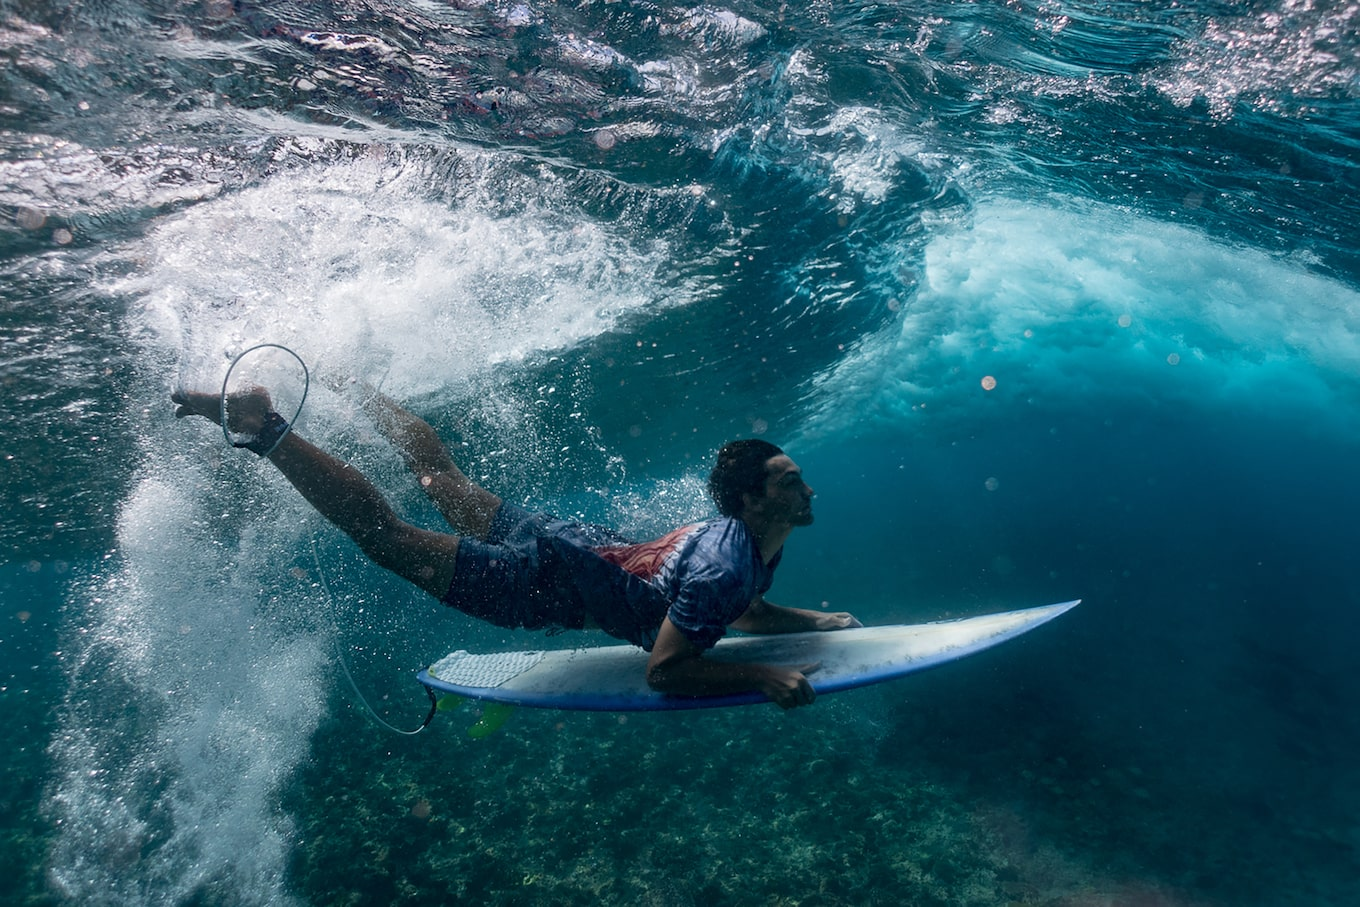 Danas-Macijauskas-sony-RX100M5-surfer-underwater-preparing-to-surface-on-surfboard